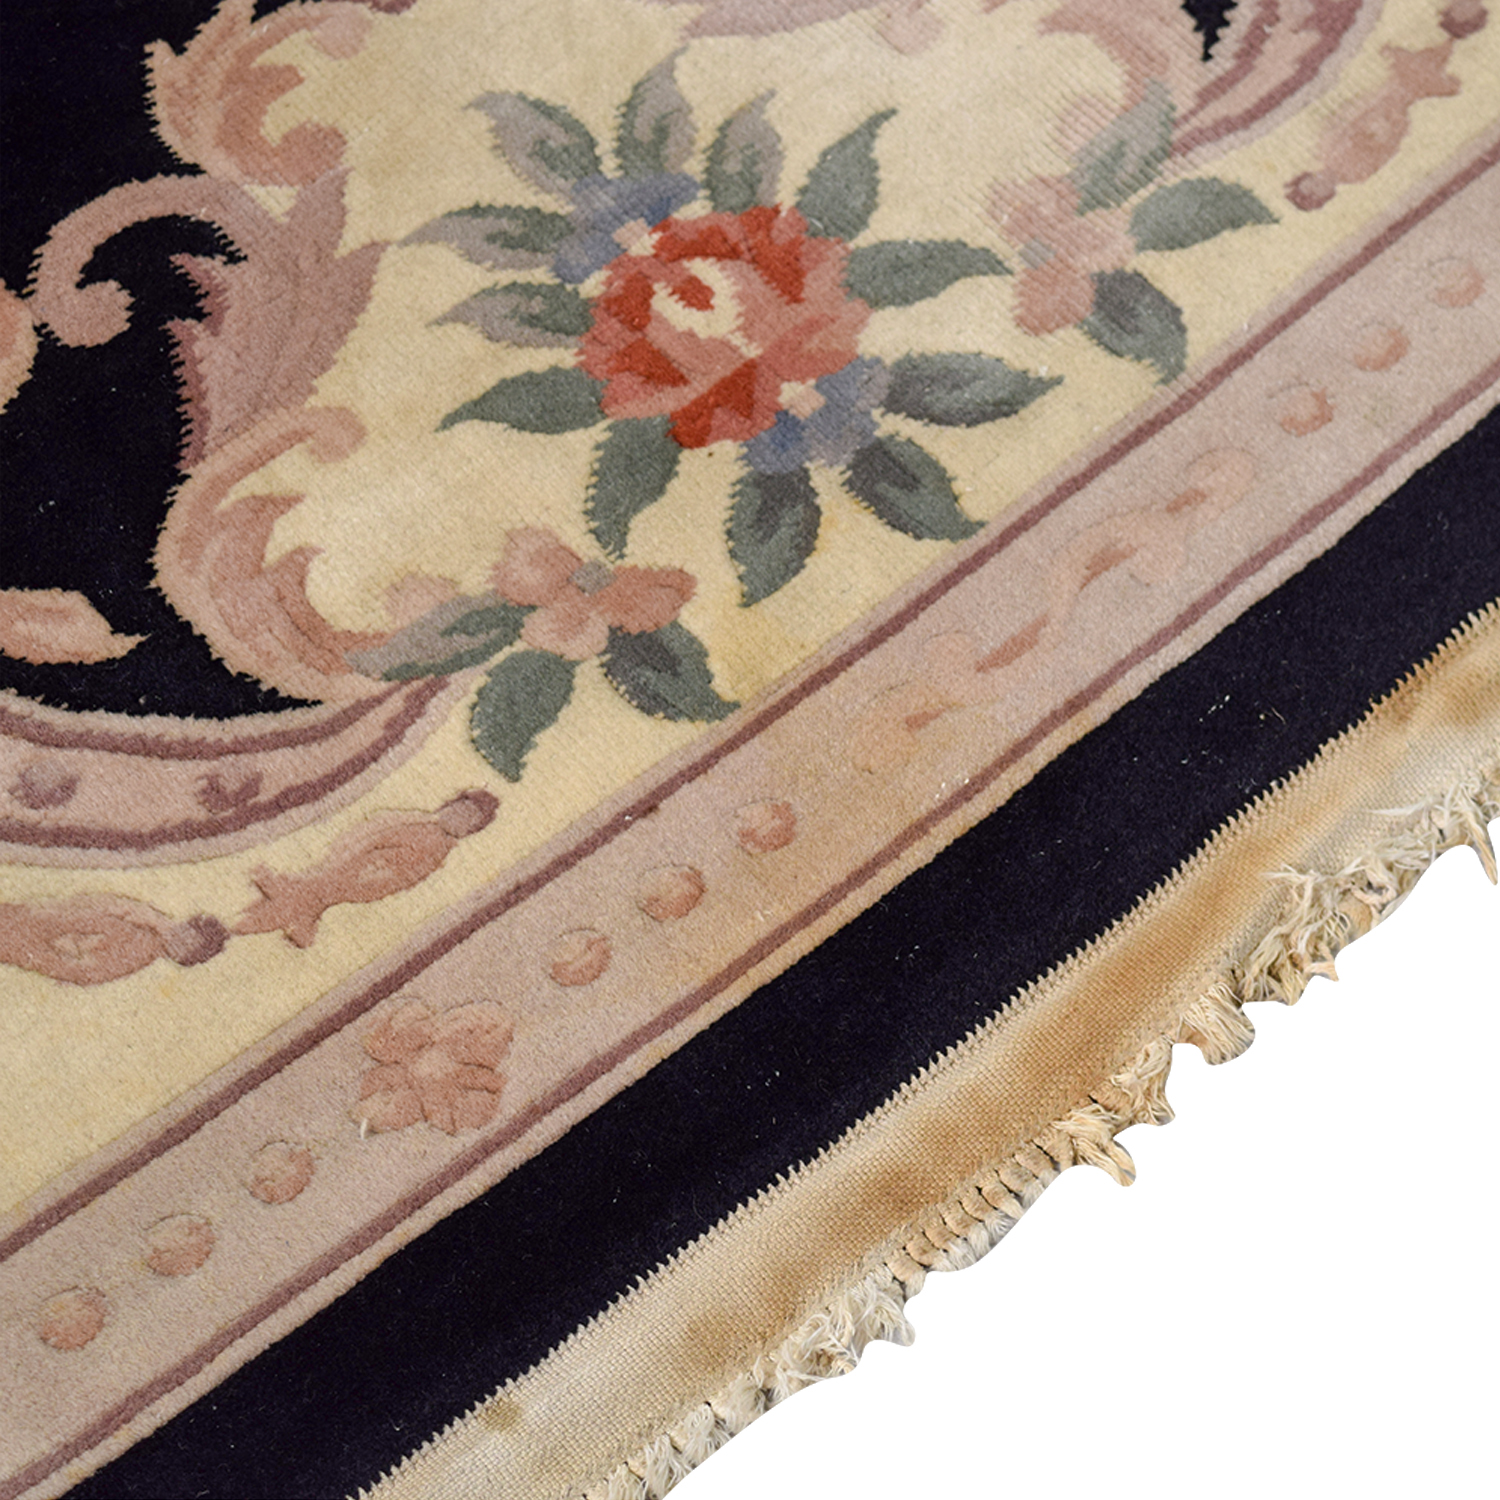 Sofas And Recliners 90% Off - Black Oriental Multi-colored Floral Rug / Decor